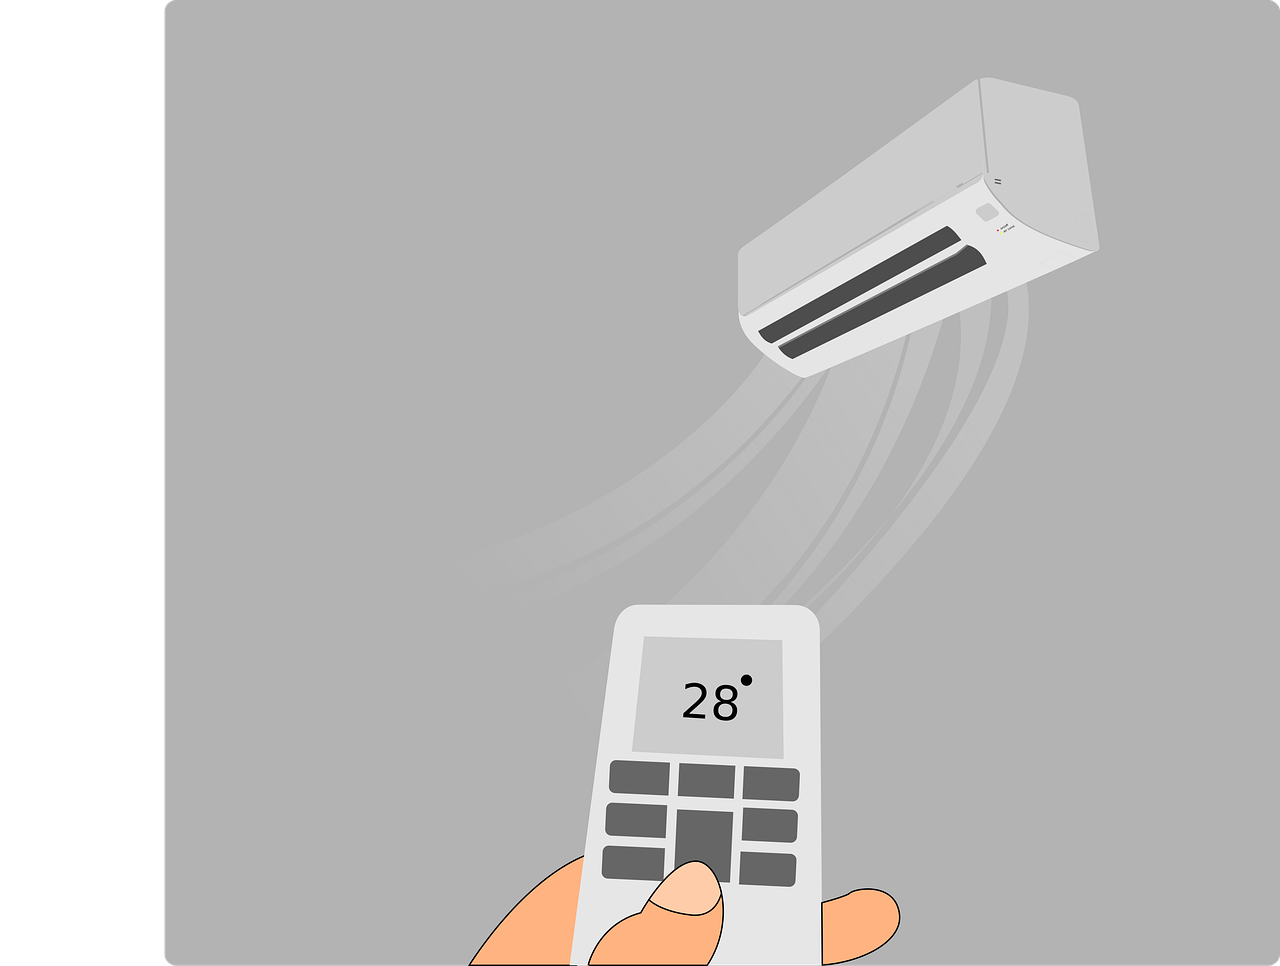 image - Don't Wait! Why You May Need Emergency Air Conditioning Repair